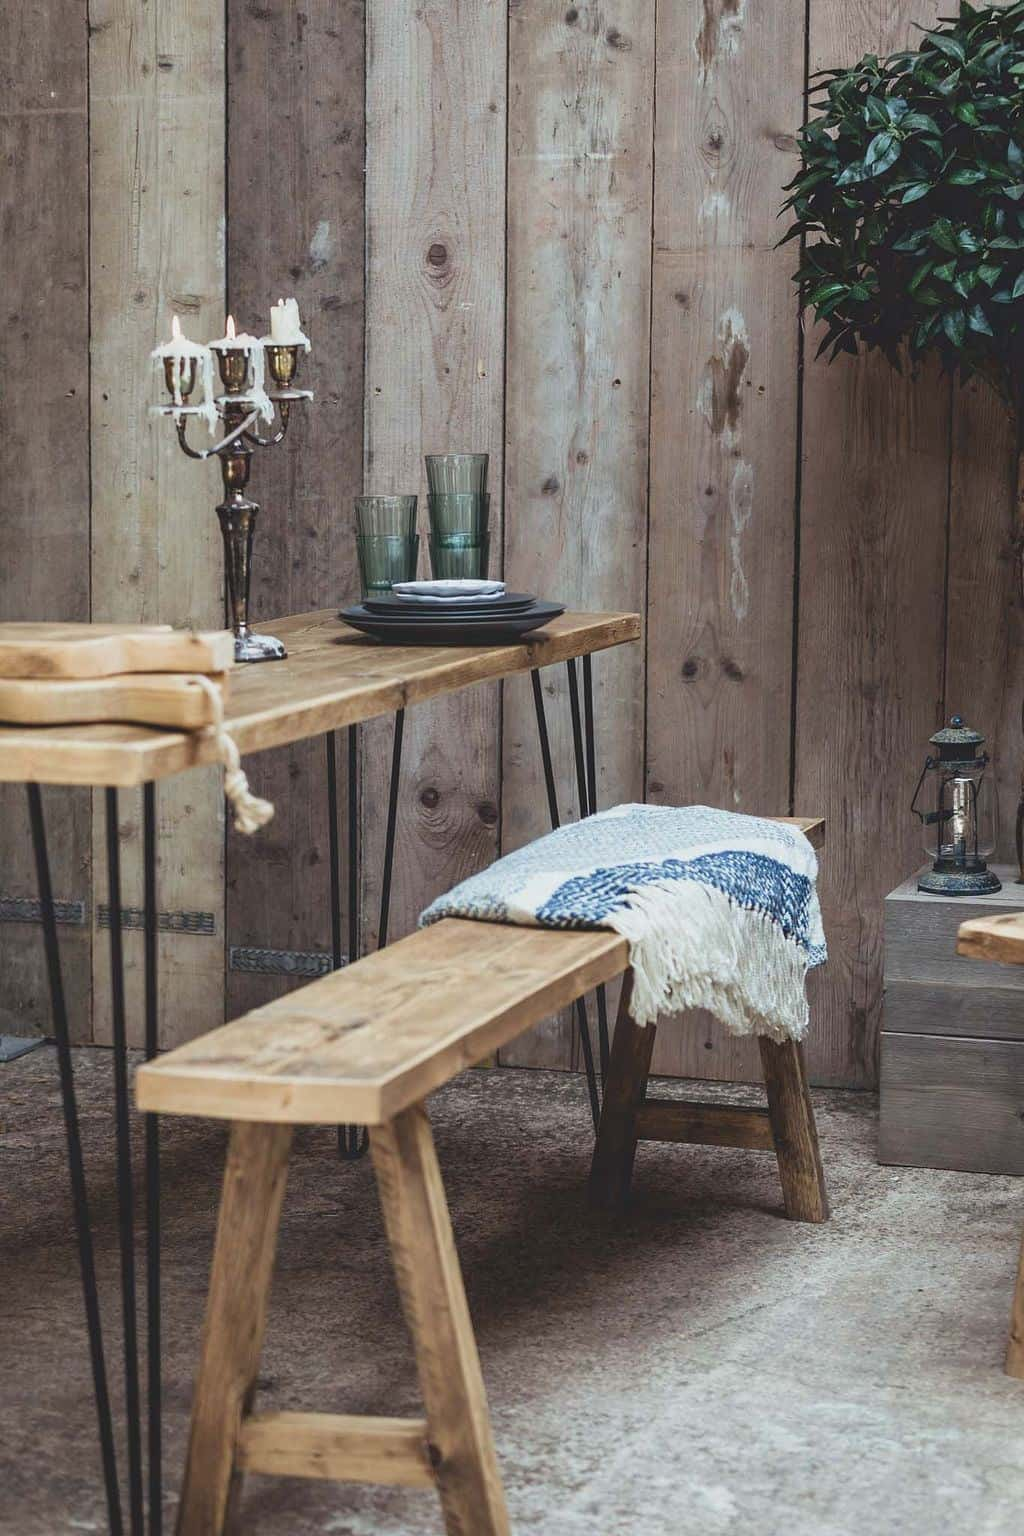 Vincent Trading-Table & Bench - reclaimed wooden items